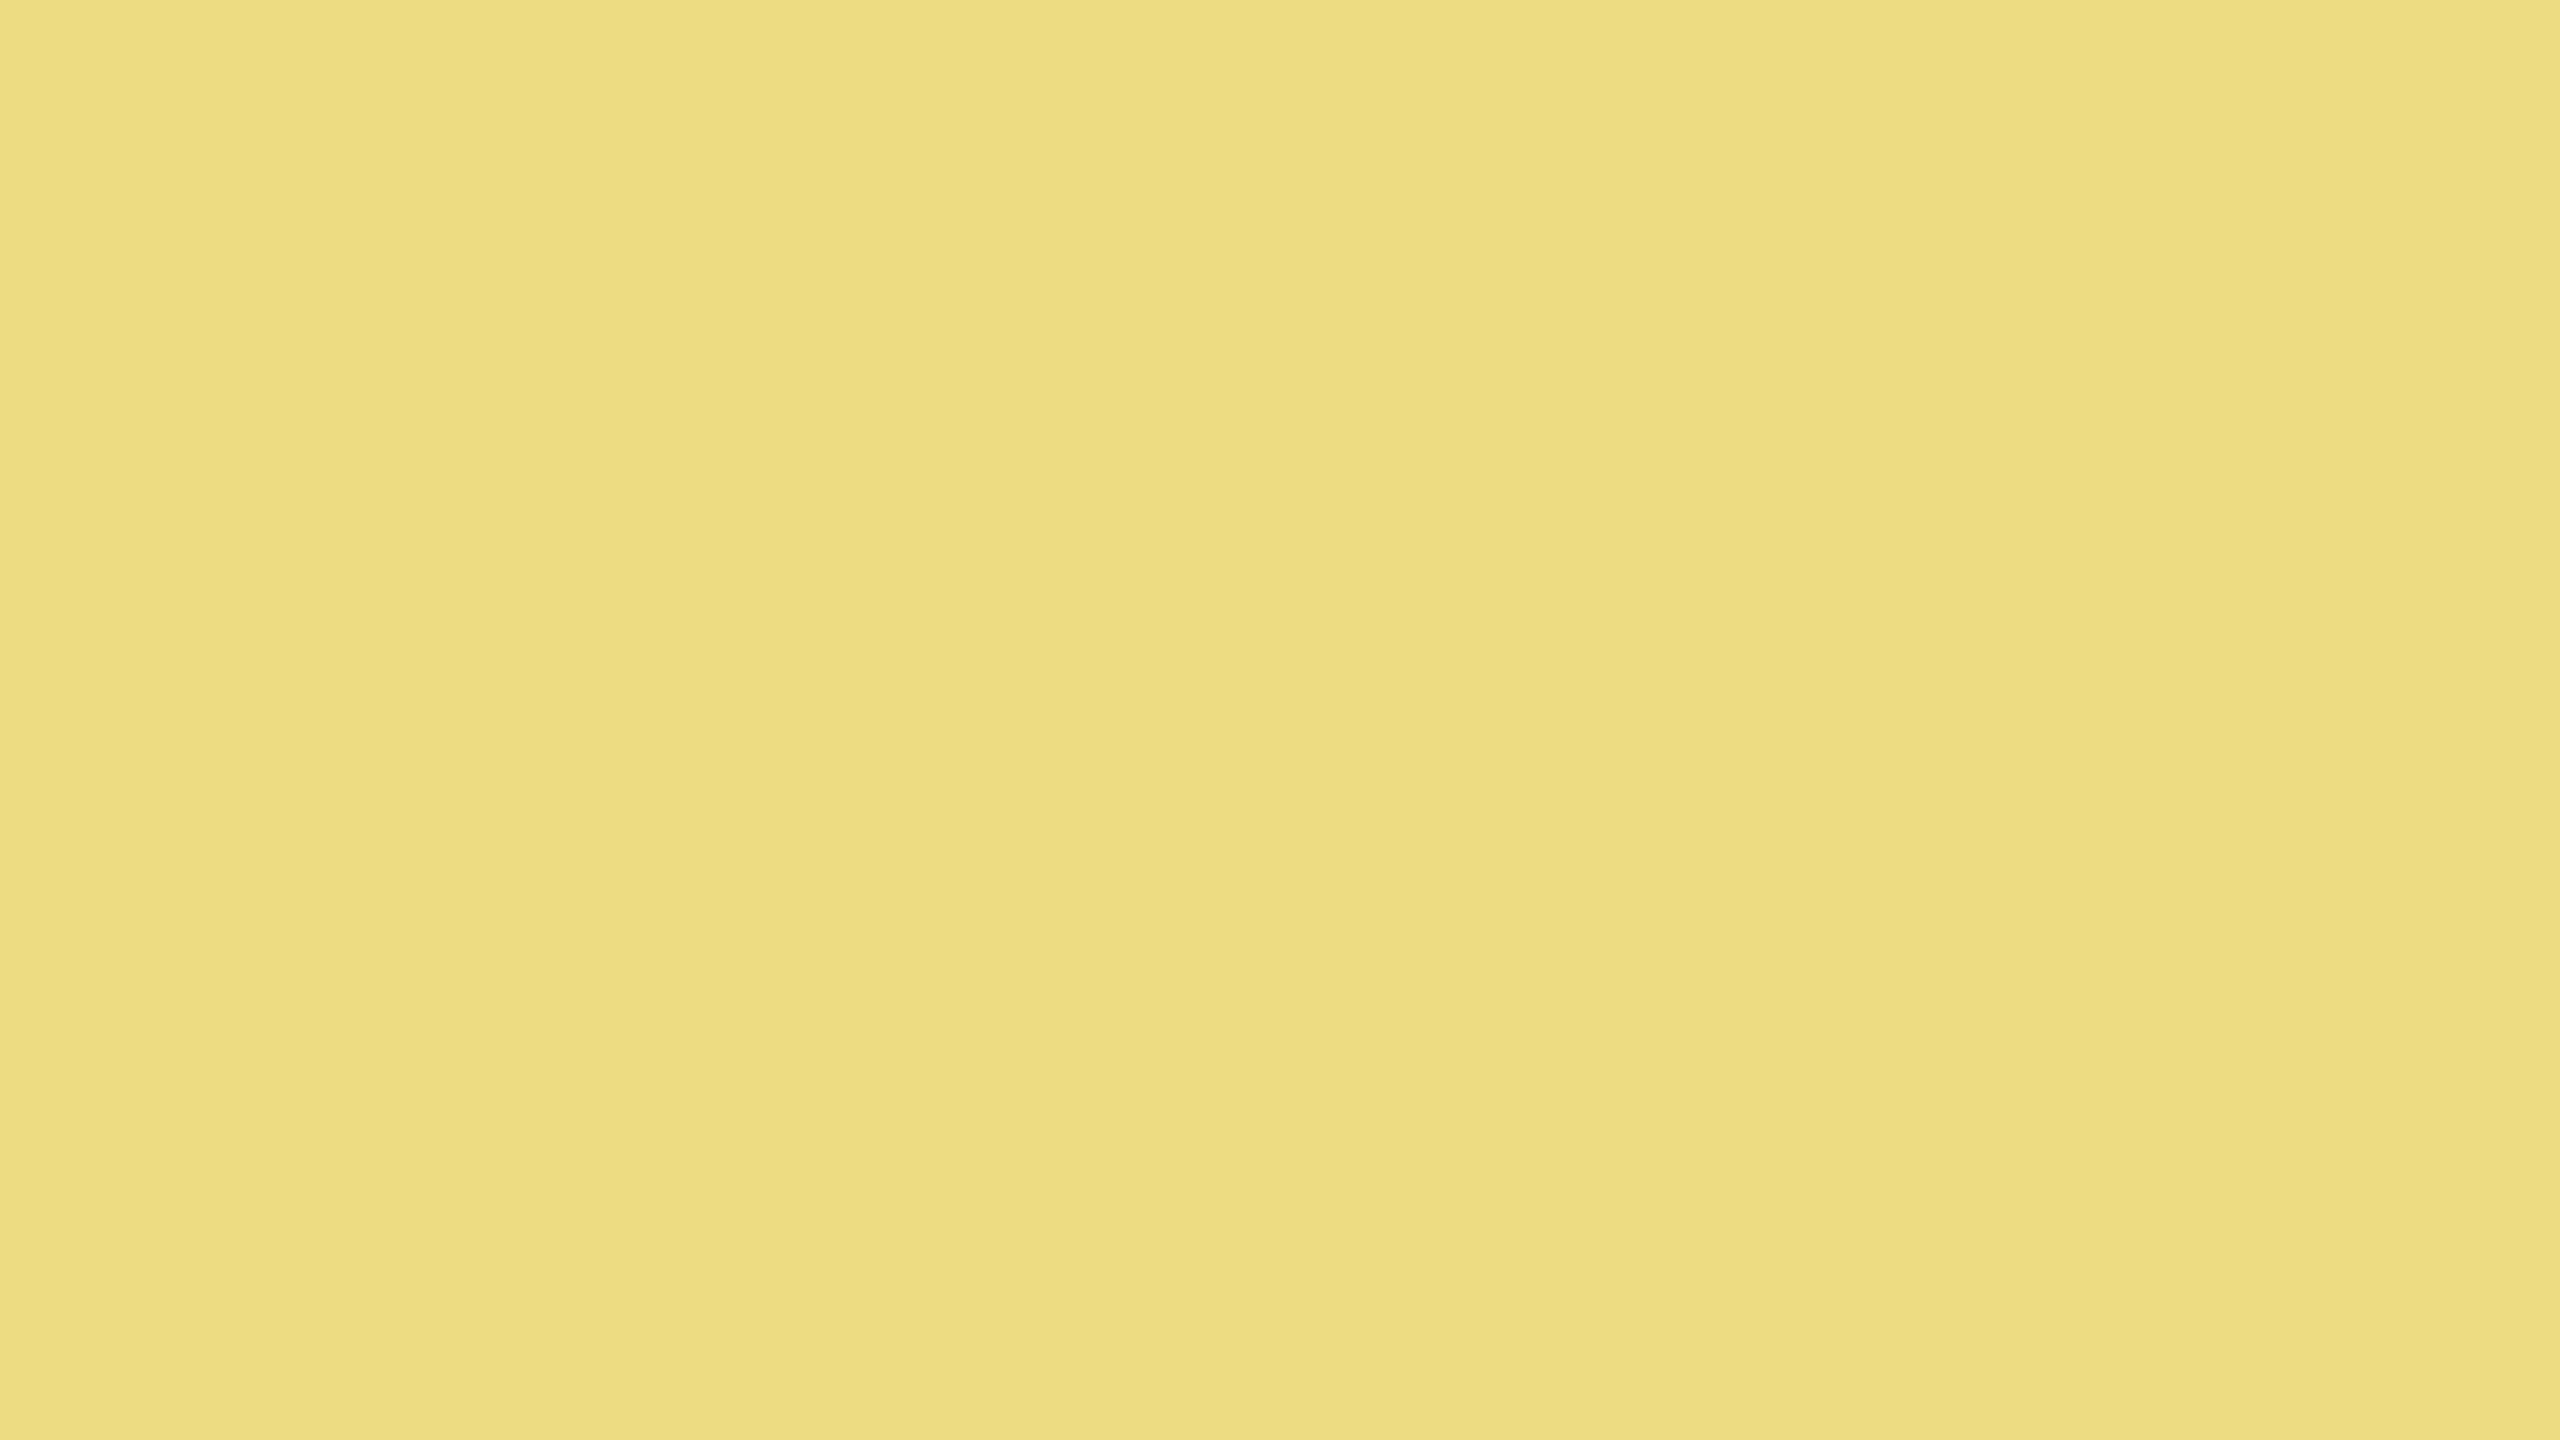 2560x1440 Flax Solid Color Background